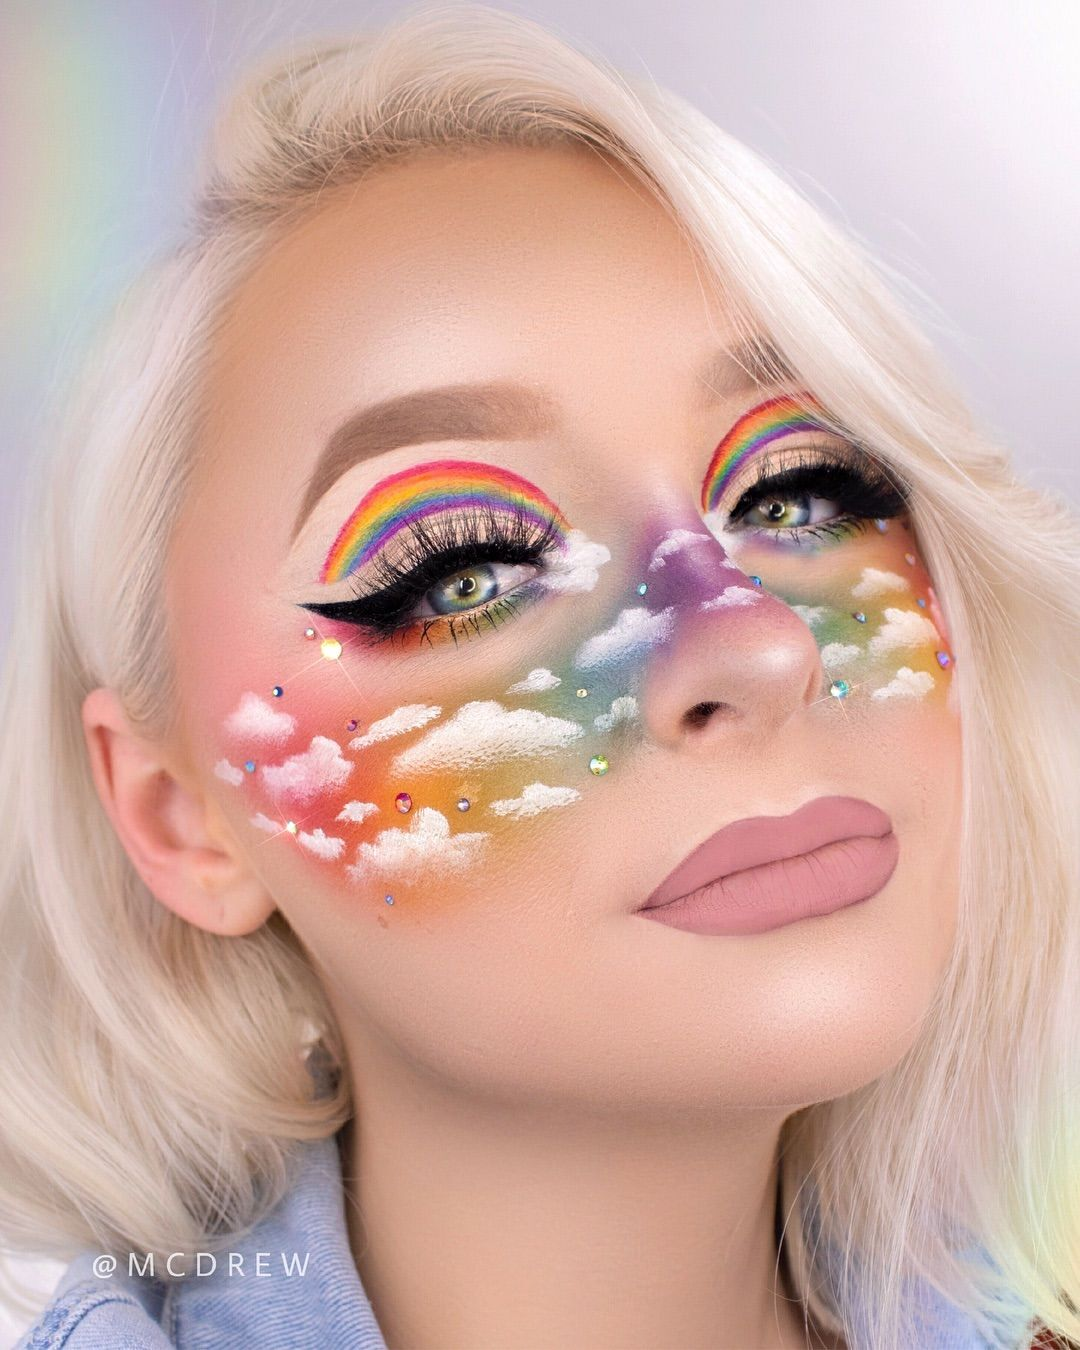 """♡ d r e w ♡ on Instagram: """"RAINBOW CLOUD GLAM 🌈☁️ ⠀⠀⠀⠀⠀⠀⠀⠀⠀⠀⠀⠀⠀⠀⠀⠀ my @jamescharles sister sunday takeover look! i've said it a lot but i just wanna say how truly…"""""""